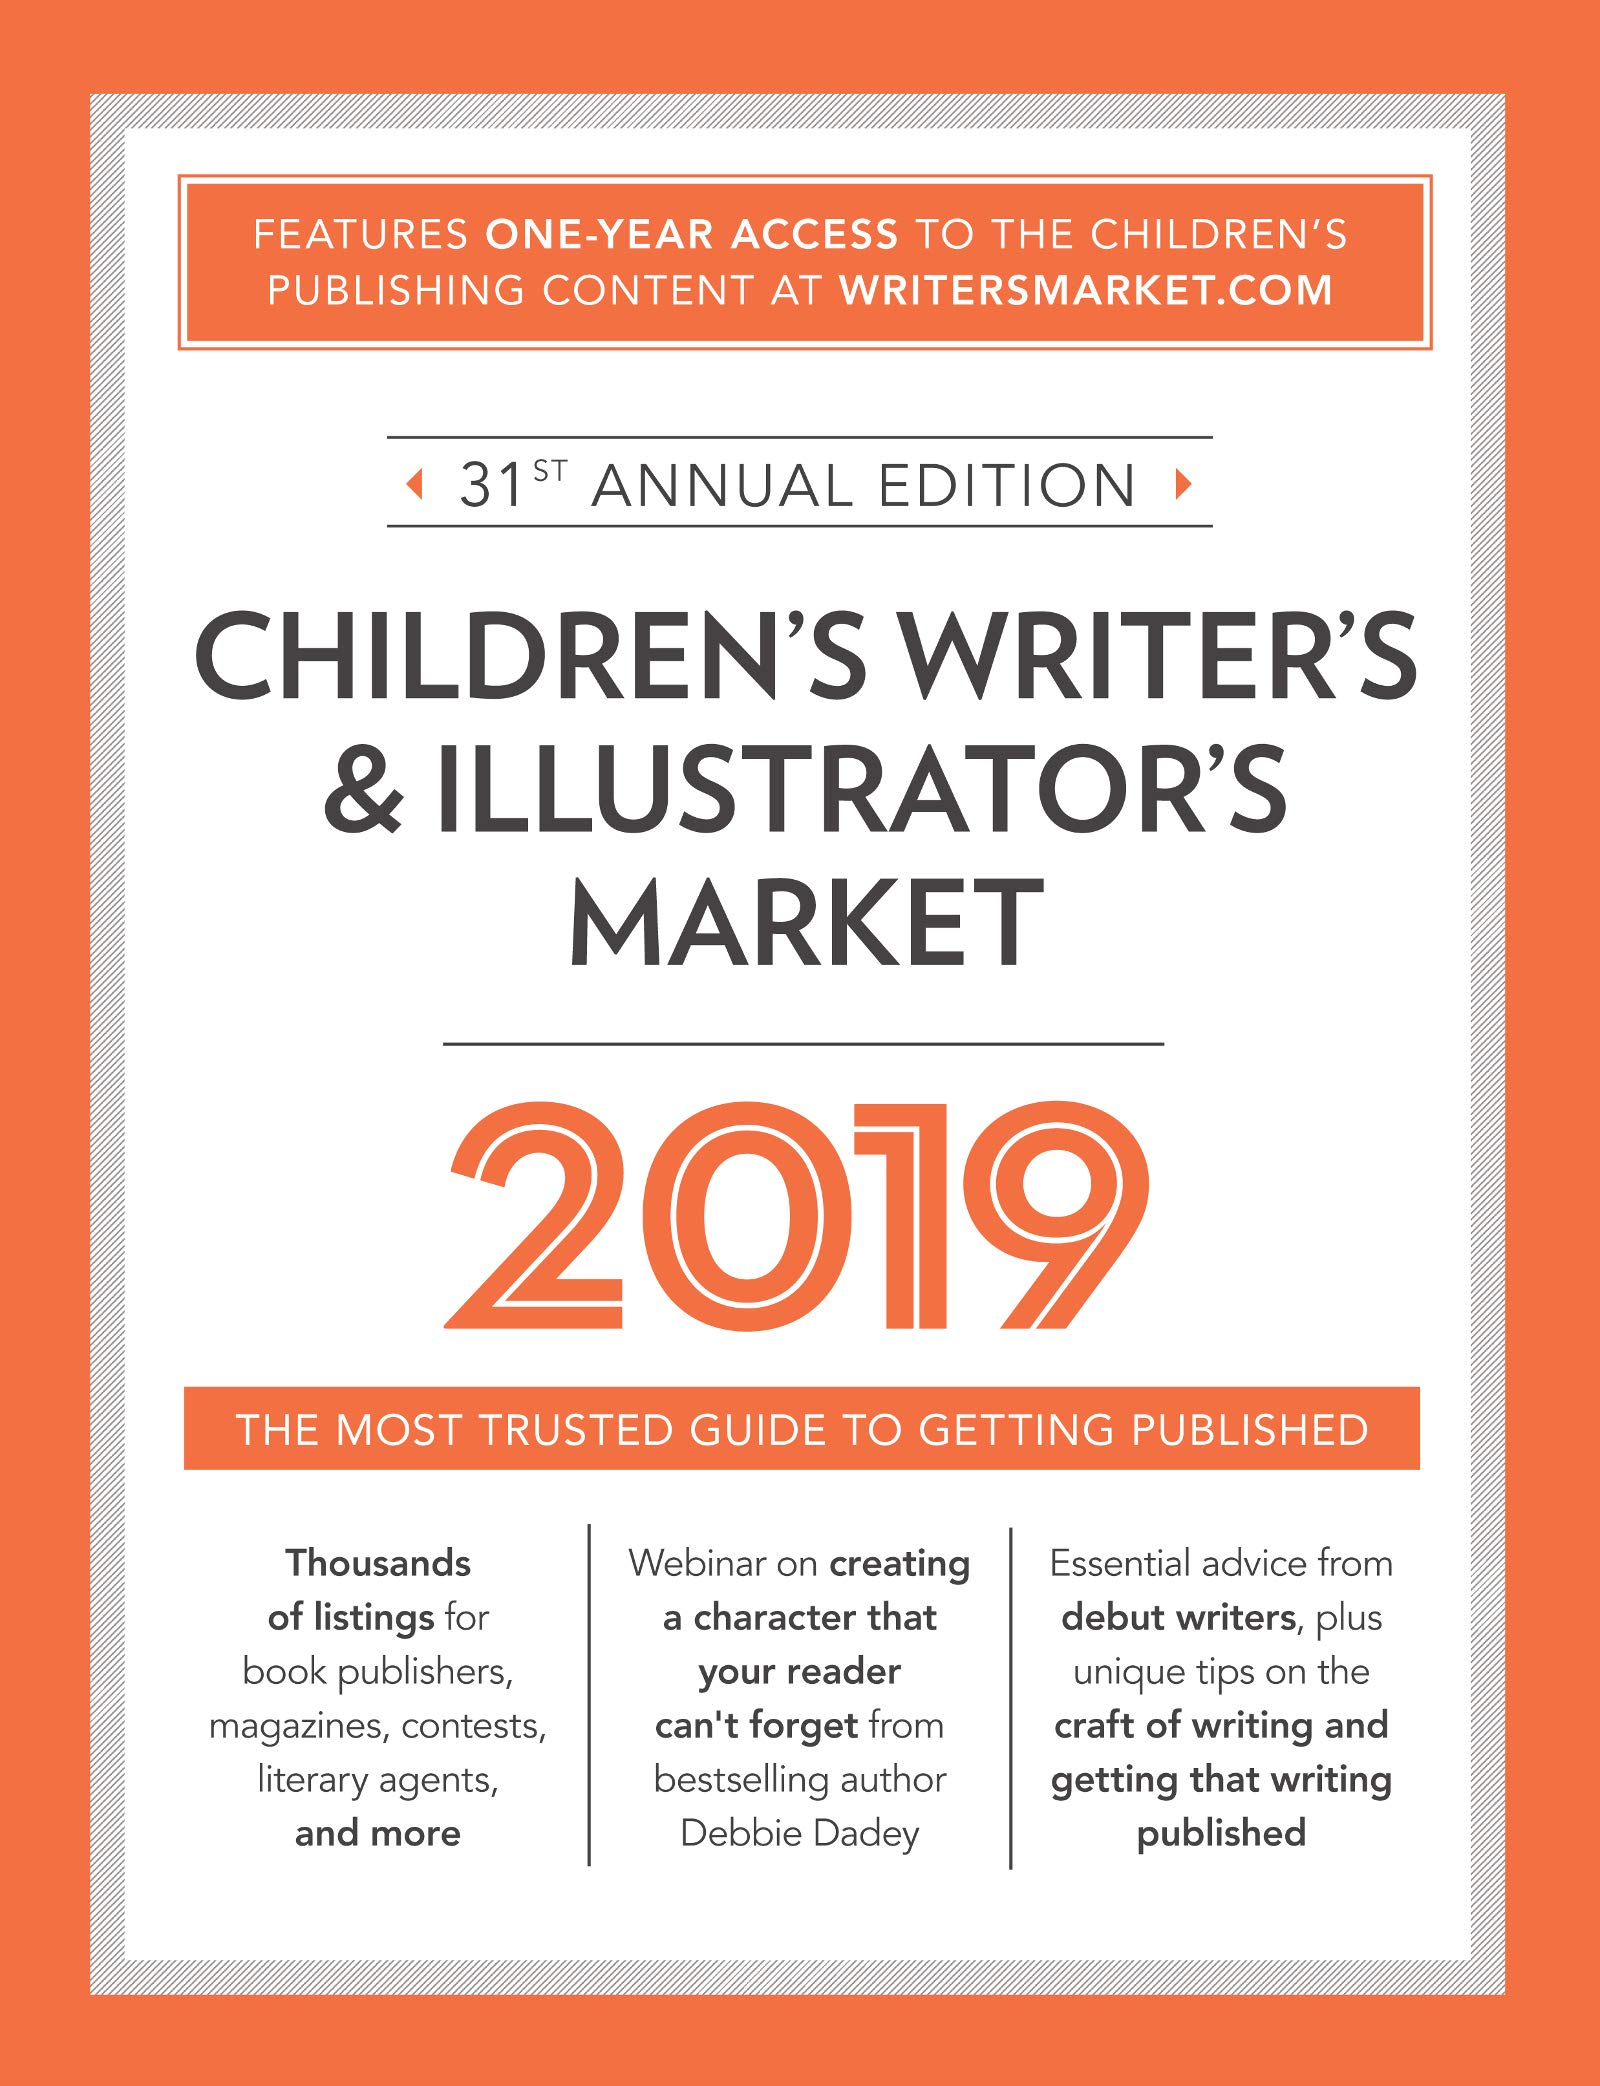 Children's Writer's & Illustrator's Market 2019: The Most Trusted Guide to Getting Published by Writer's Digest Books